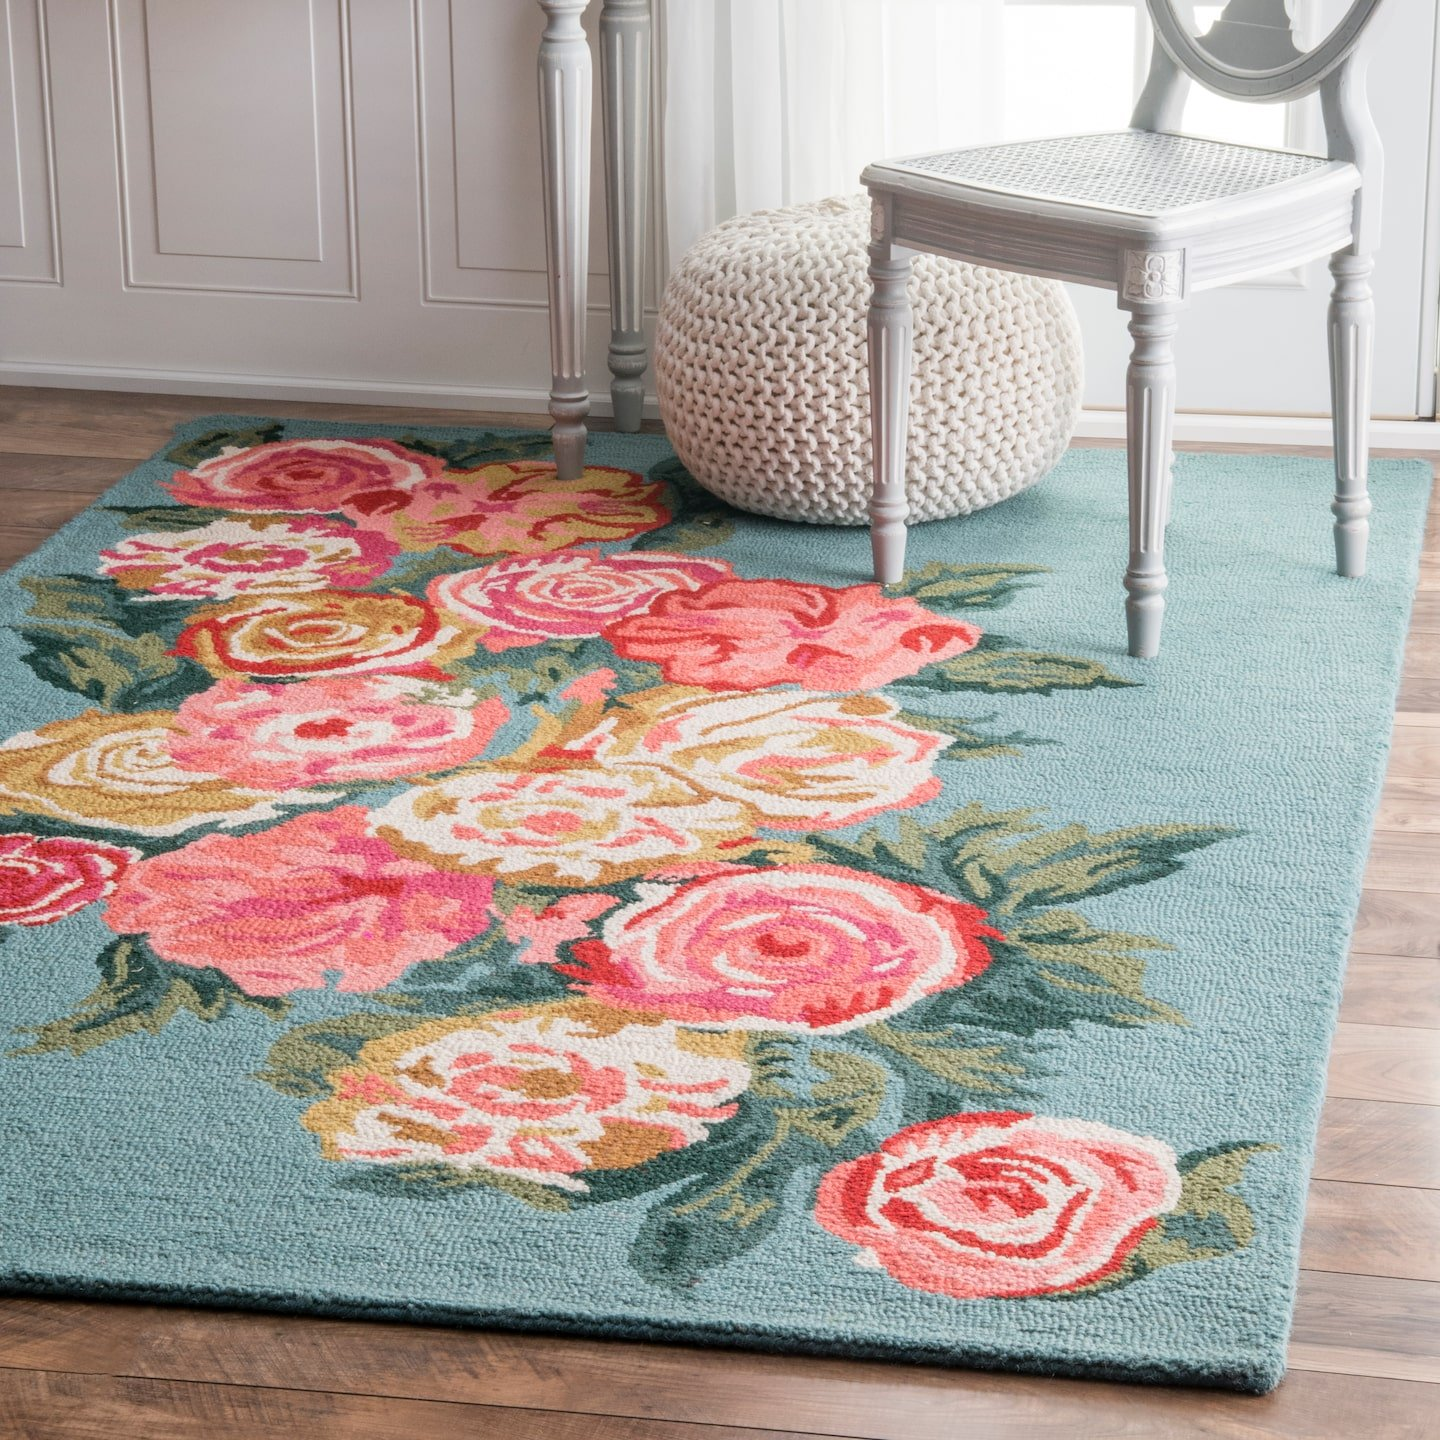 nuLOOM Bouquet Farmhouse Rose Wool Rug, 3 x 5 , Light Blue